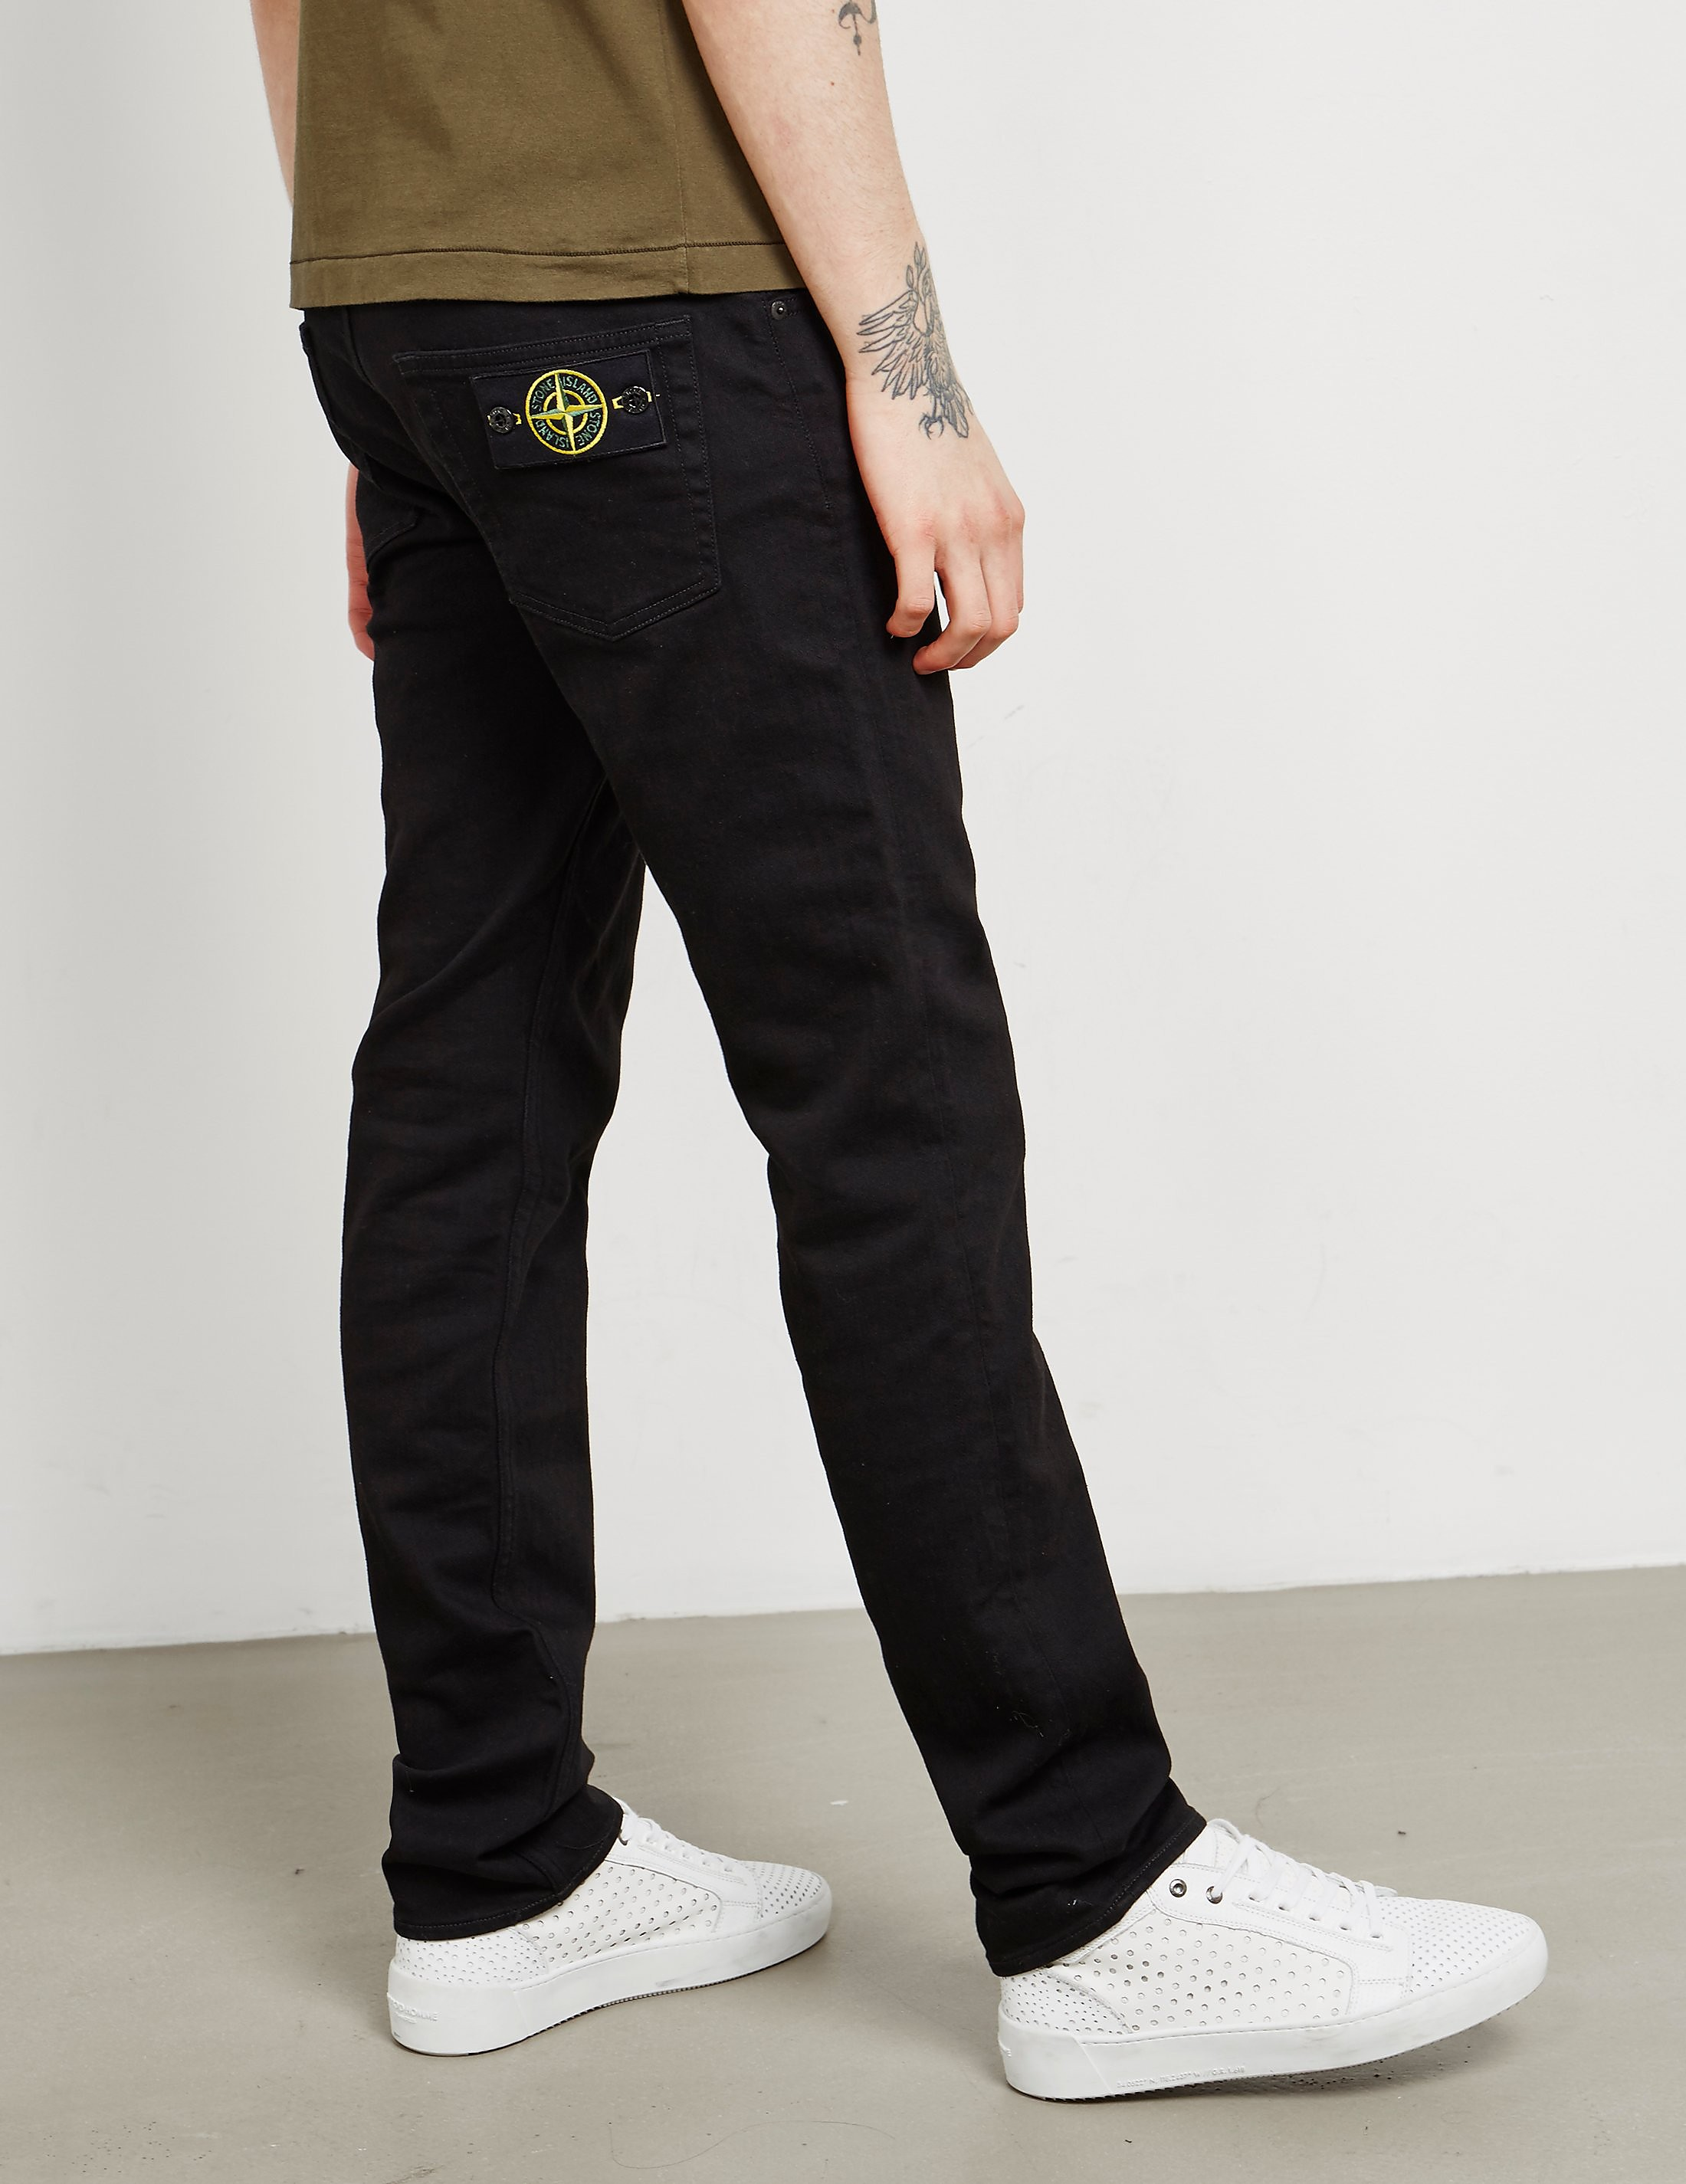 stone island jeans shop for cheap men 39 s clothing and. Black Bedroom Furniture Sets. Home Design Ideas